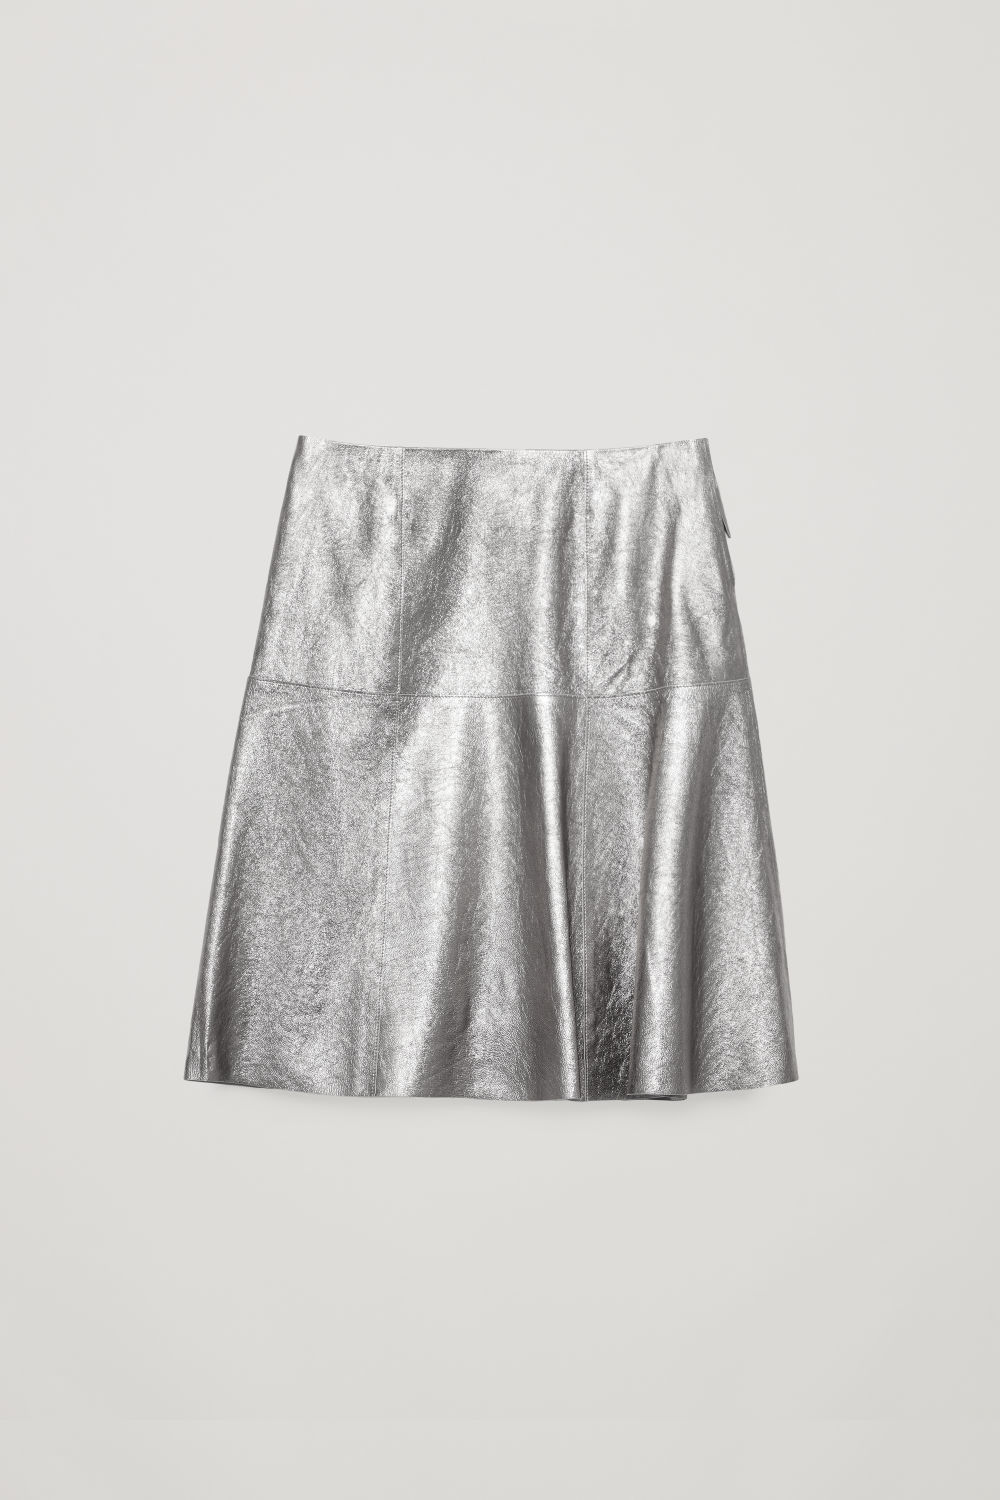 CRACKED-LEATHER A-LINE SKIRT